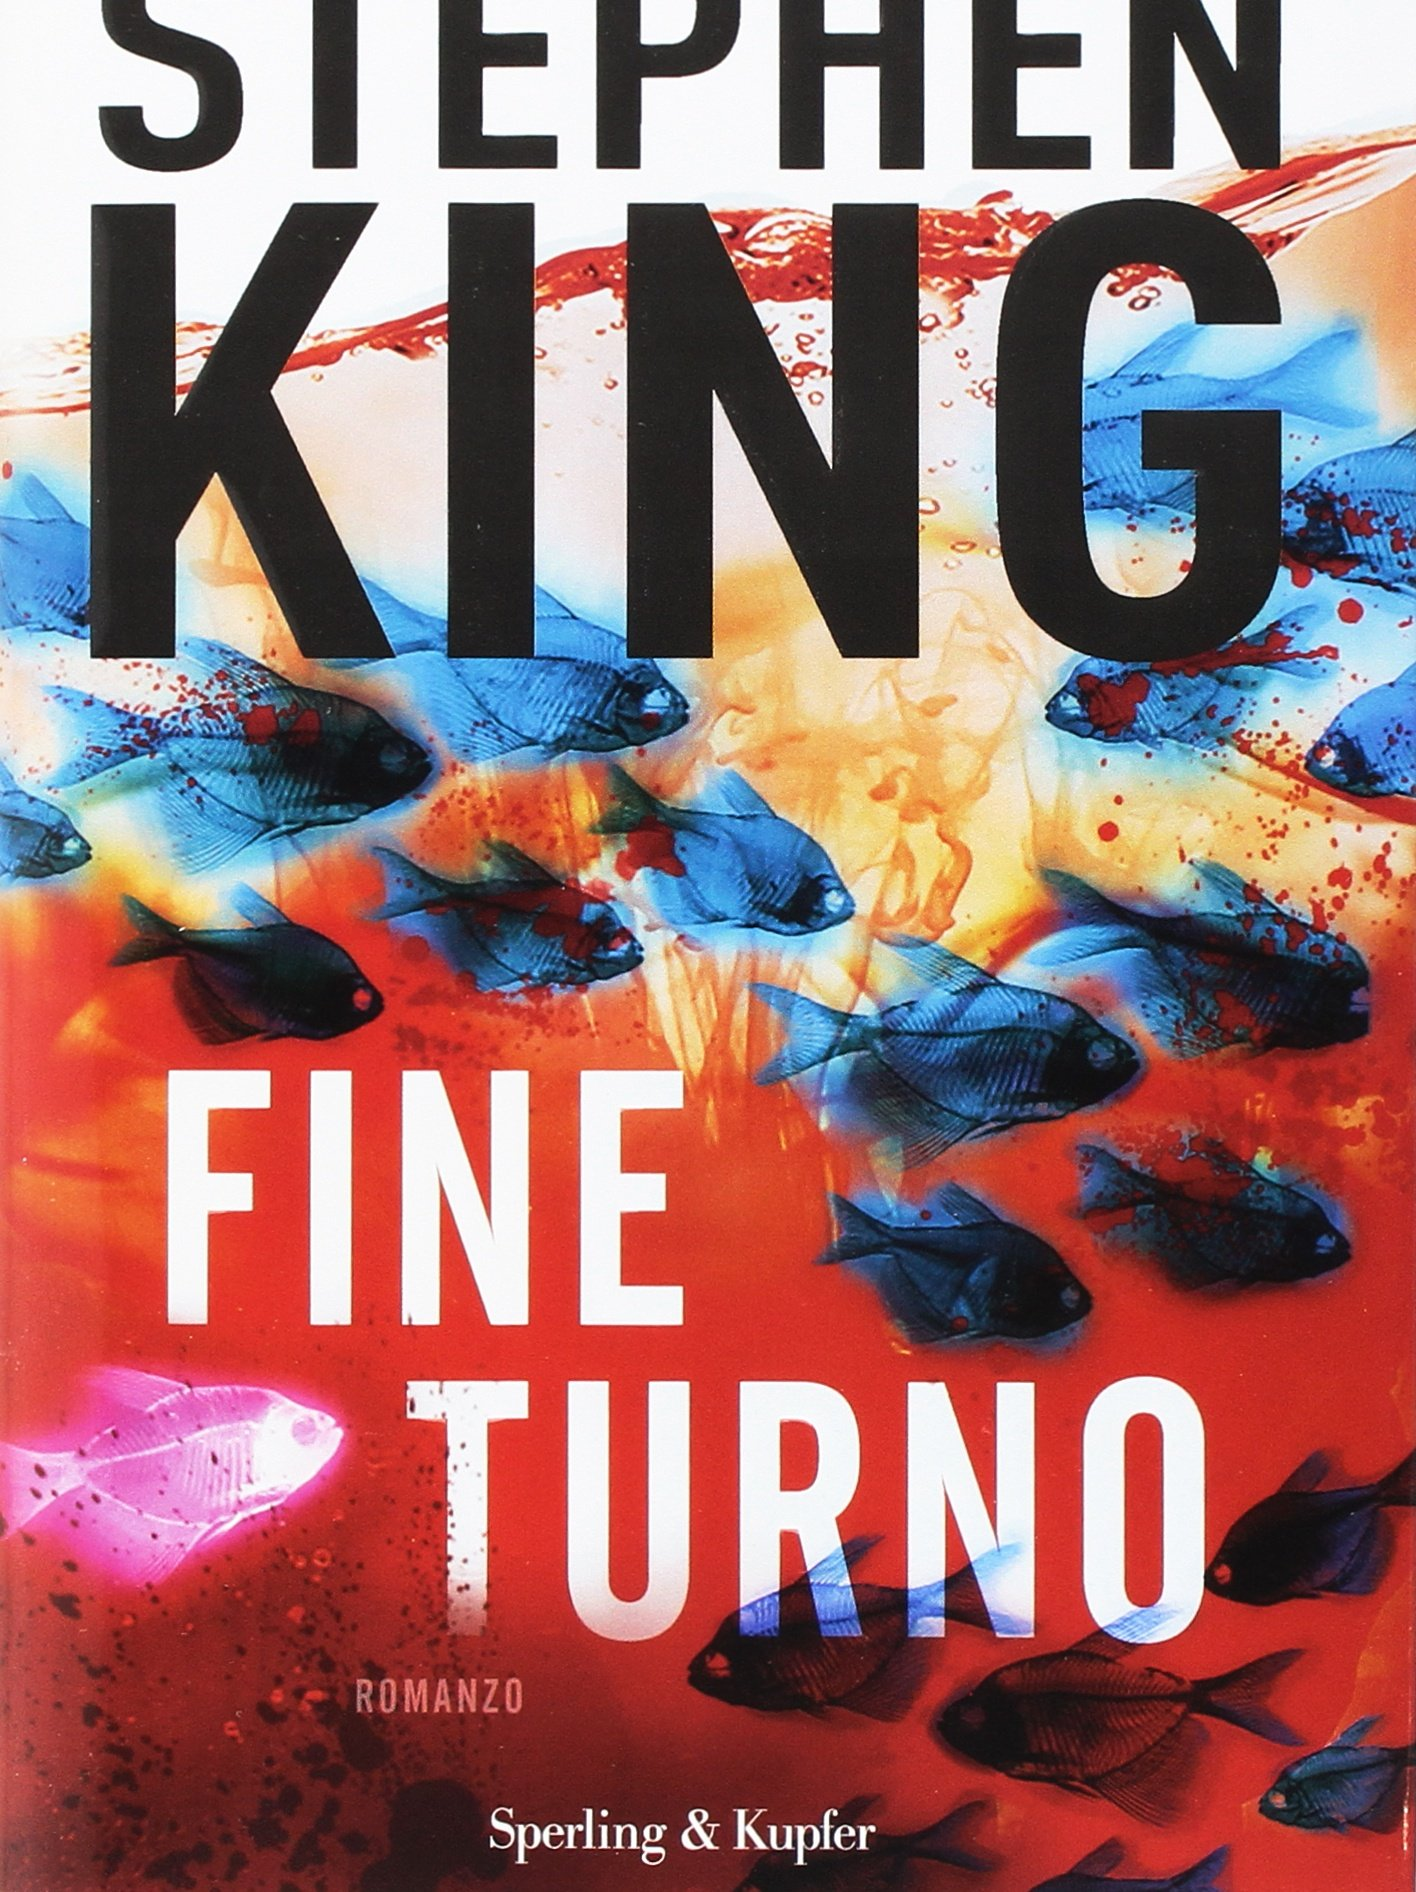 https://www.amazon.it/Fine-turno-Stephen-King/dp/8868363992/ref=as_sl_pc_tf_til?tag=malcolm07-21&linkCode=w00&linkId=ae4abaca031c3cab0c137d9b28c364a5&creativeASIN=8868363992